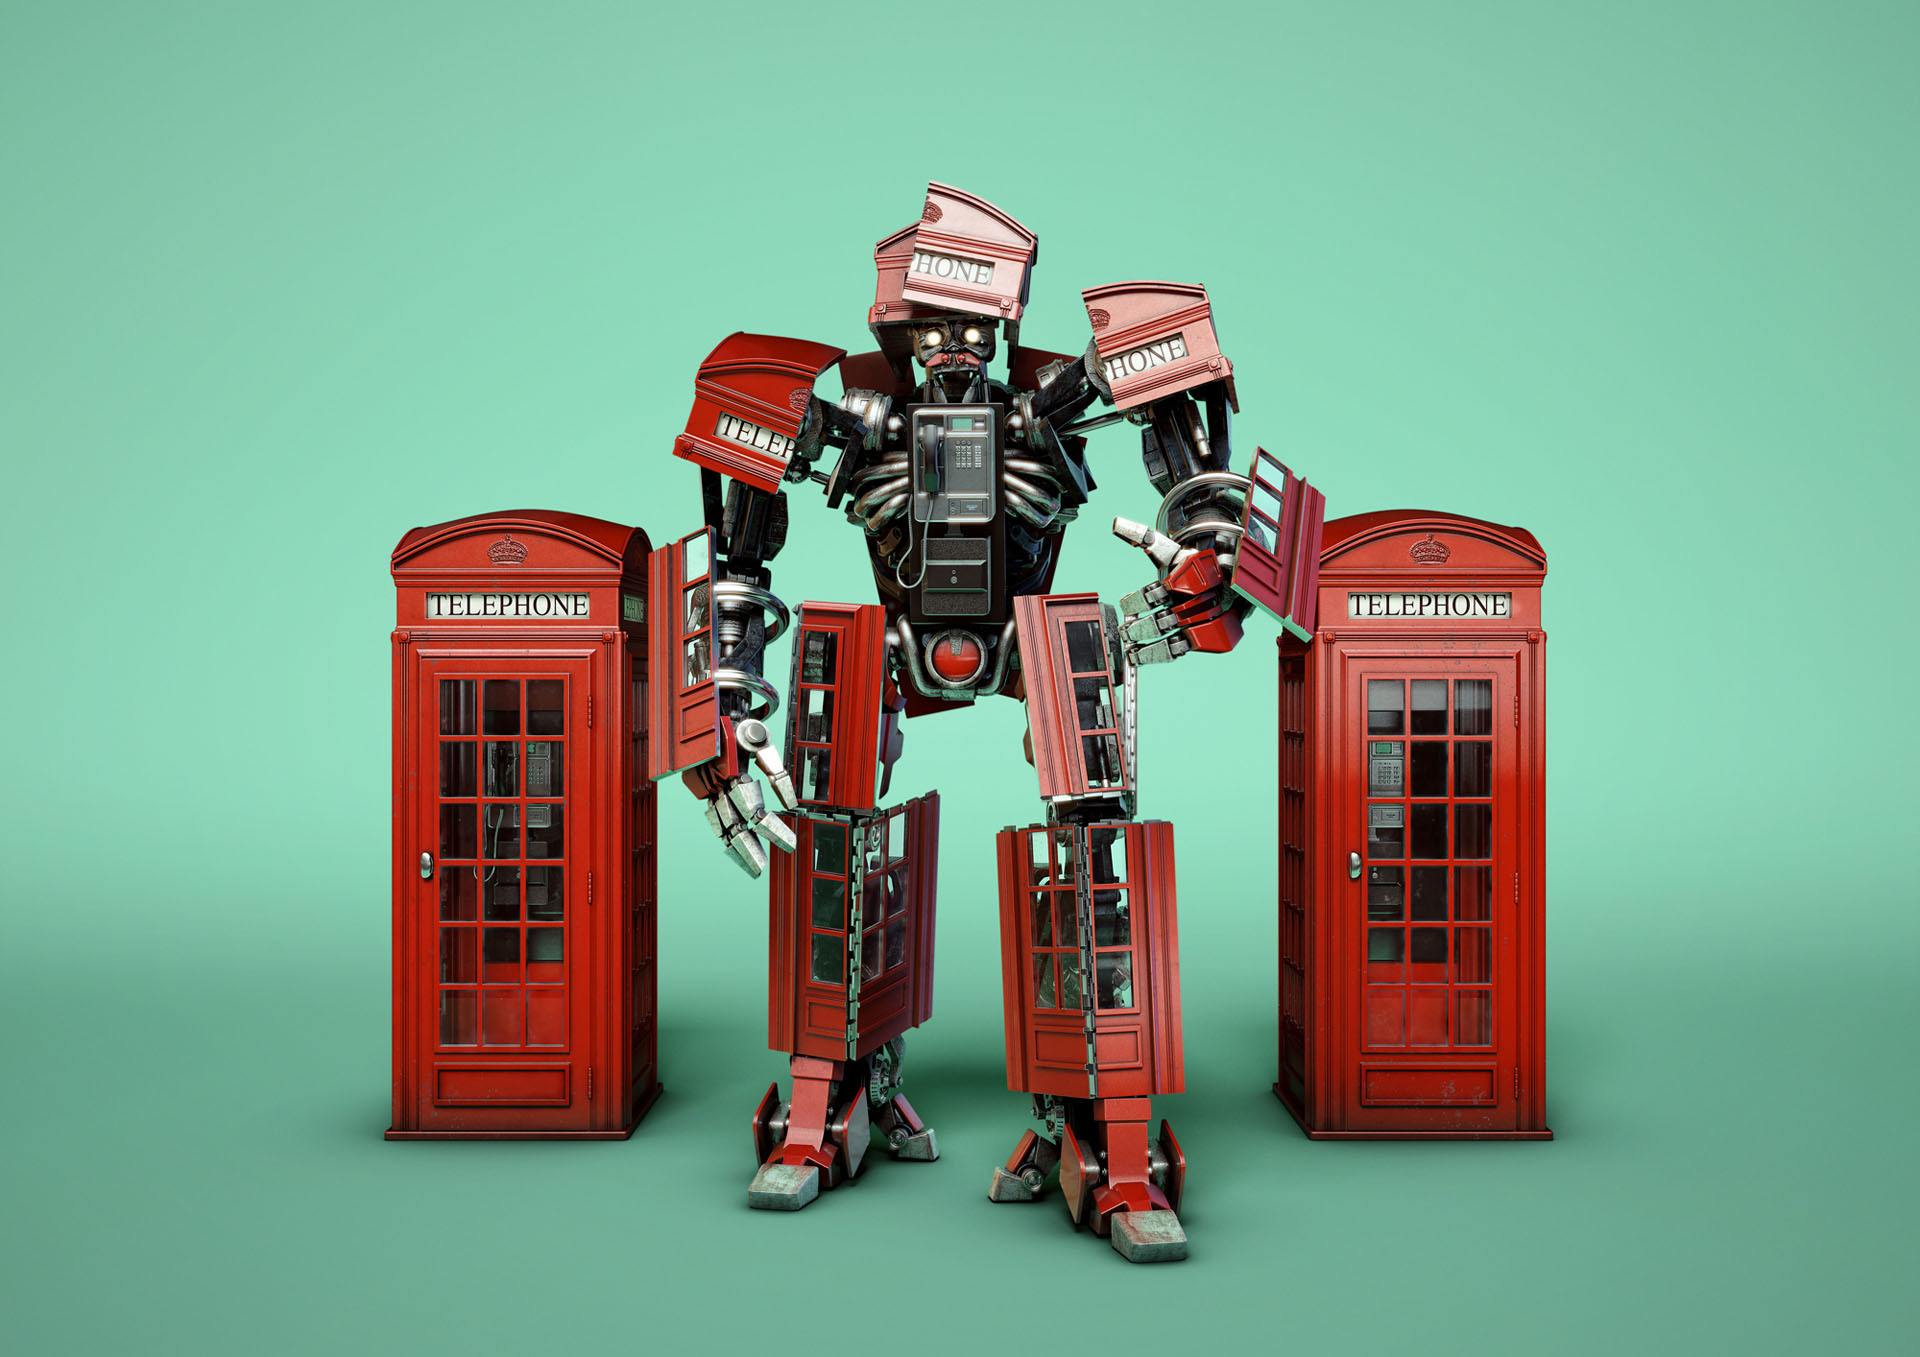 CGI Illustration of a red transformer robot standing in front of two british red telephone boxes